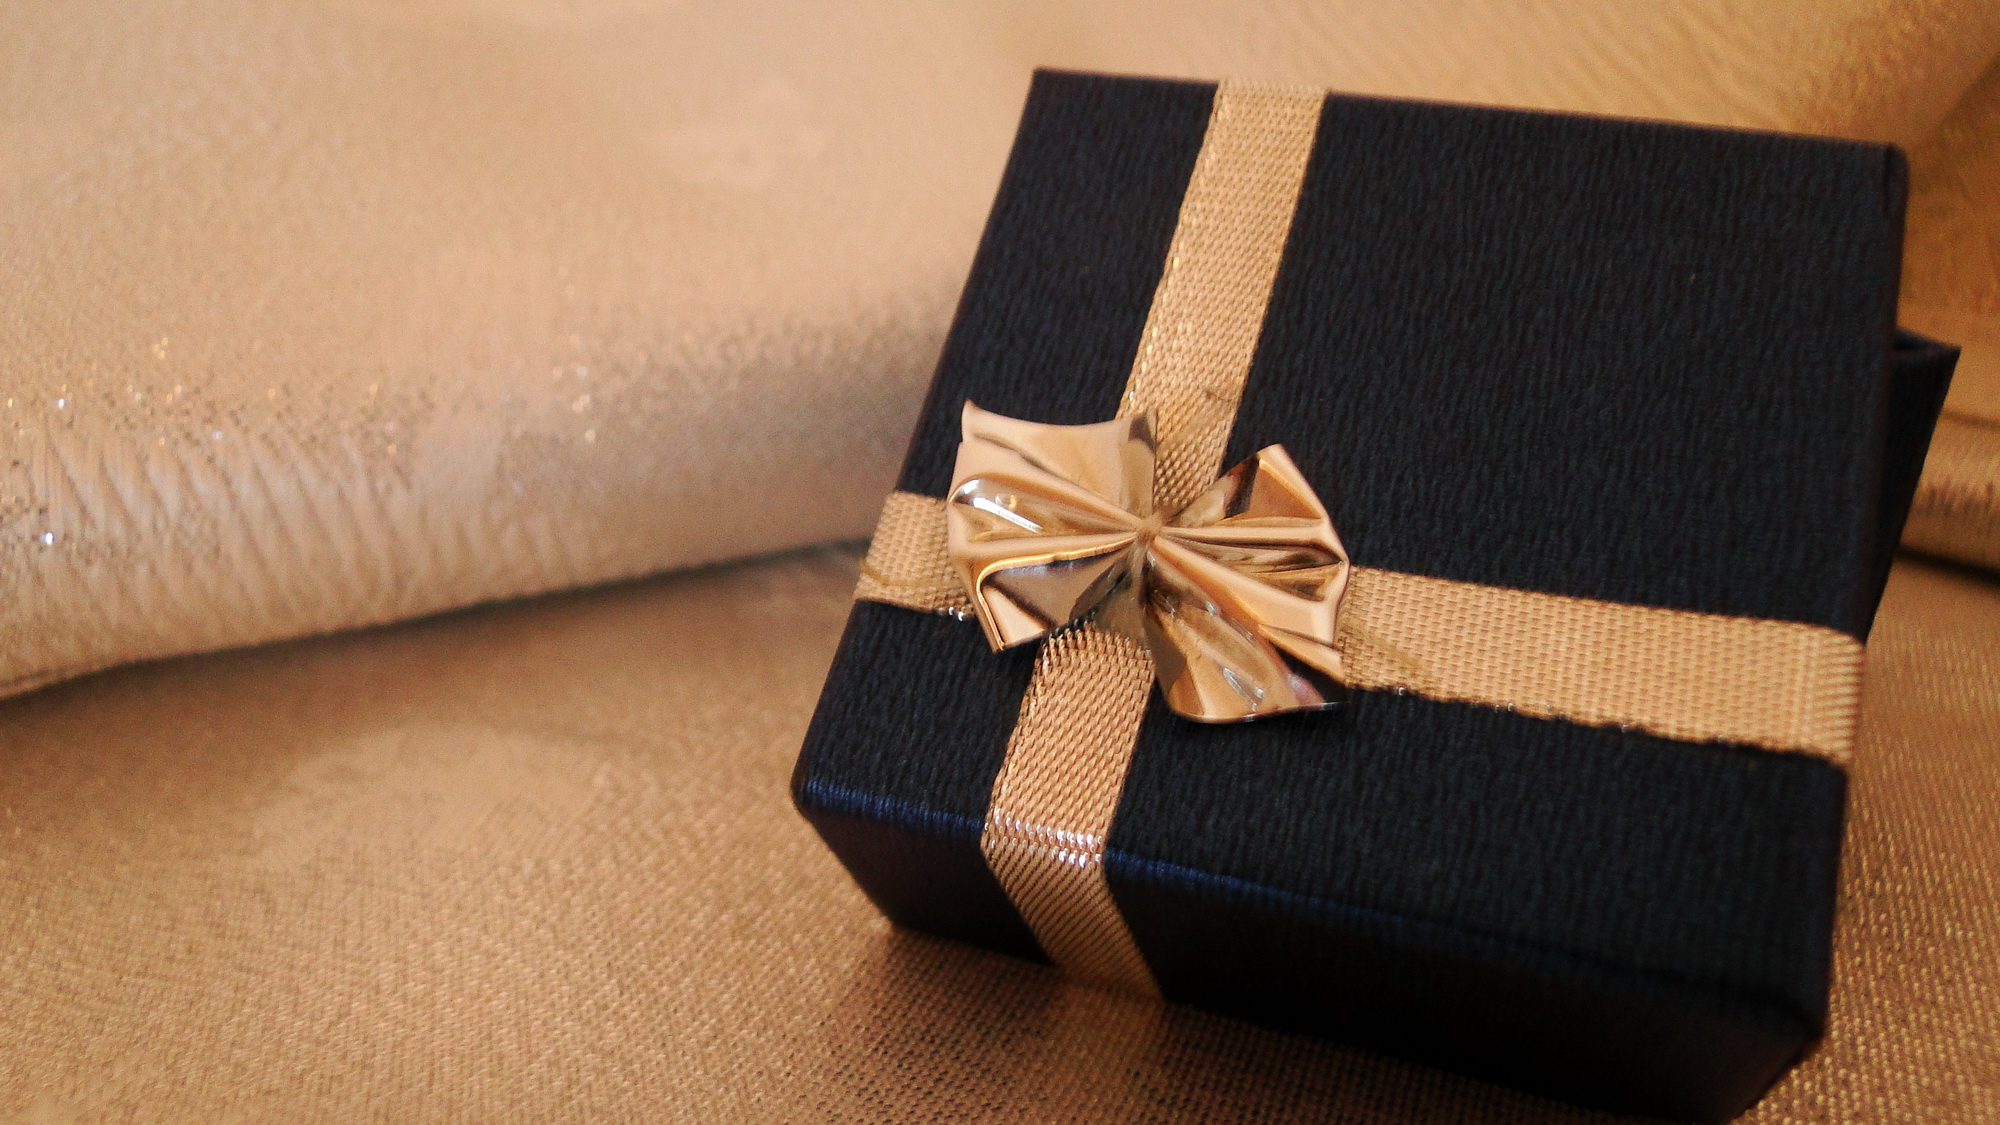 Gifting is meant to be an enjoyable process. Don't let the stress of corporate gifting make you forget that!